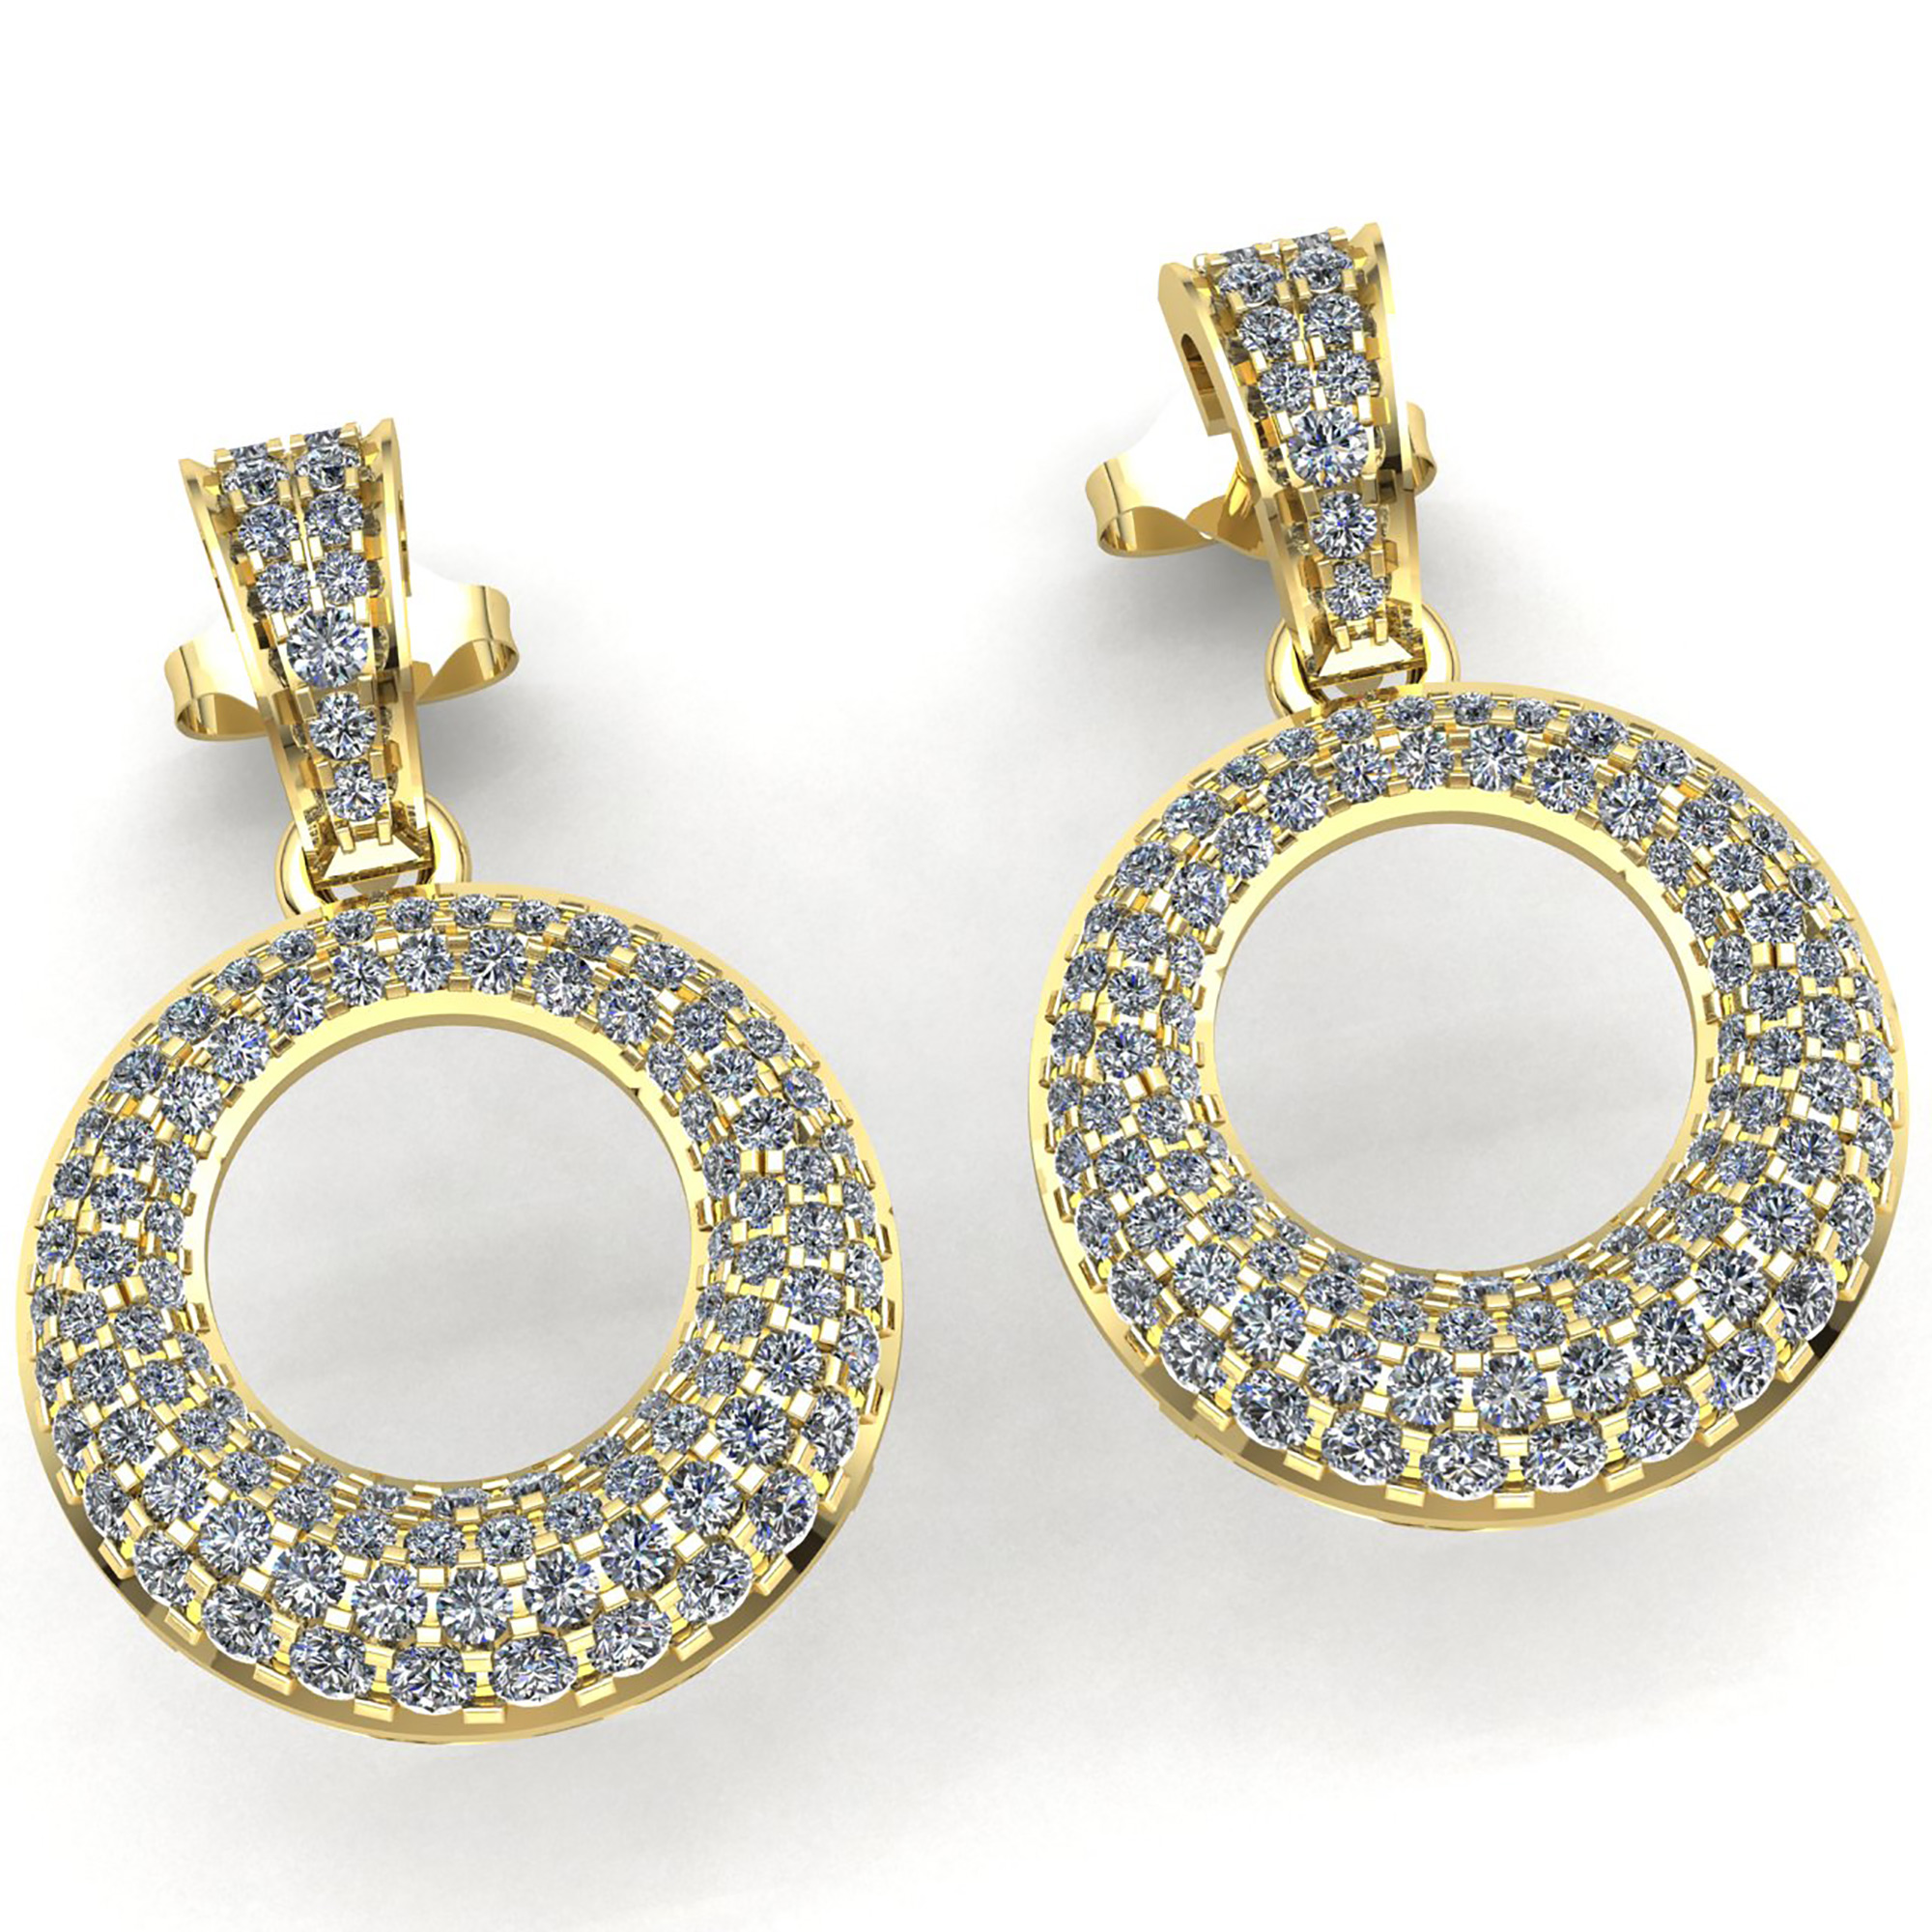 slane lyst bee gallery metallic jewelry silver product in diamond pave earrings real